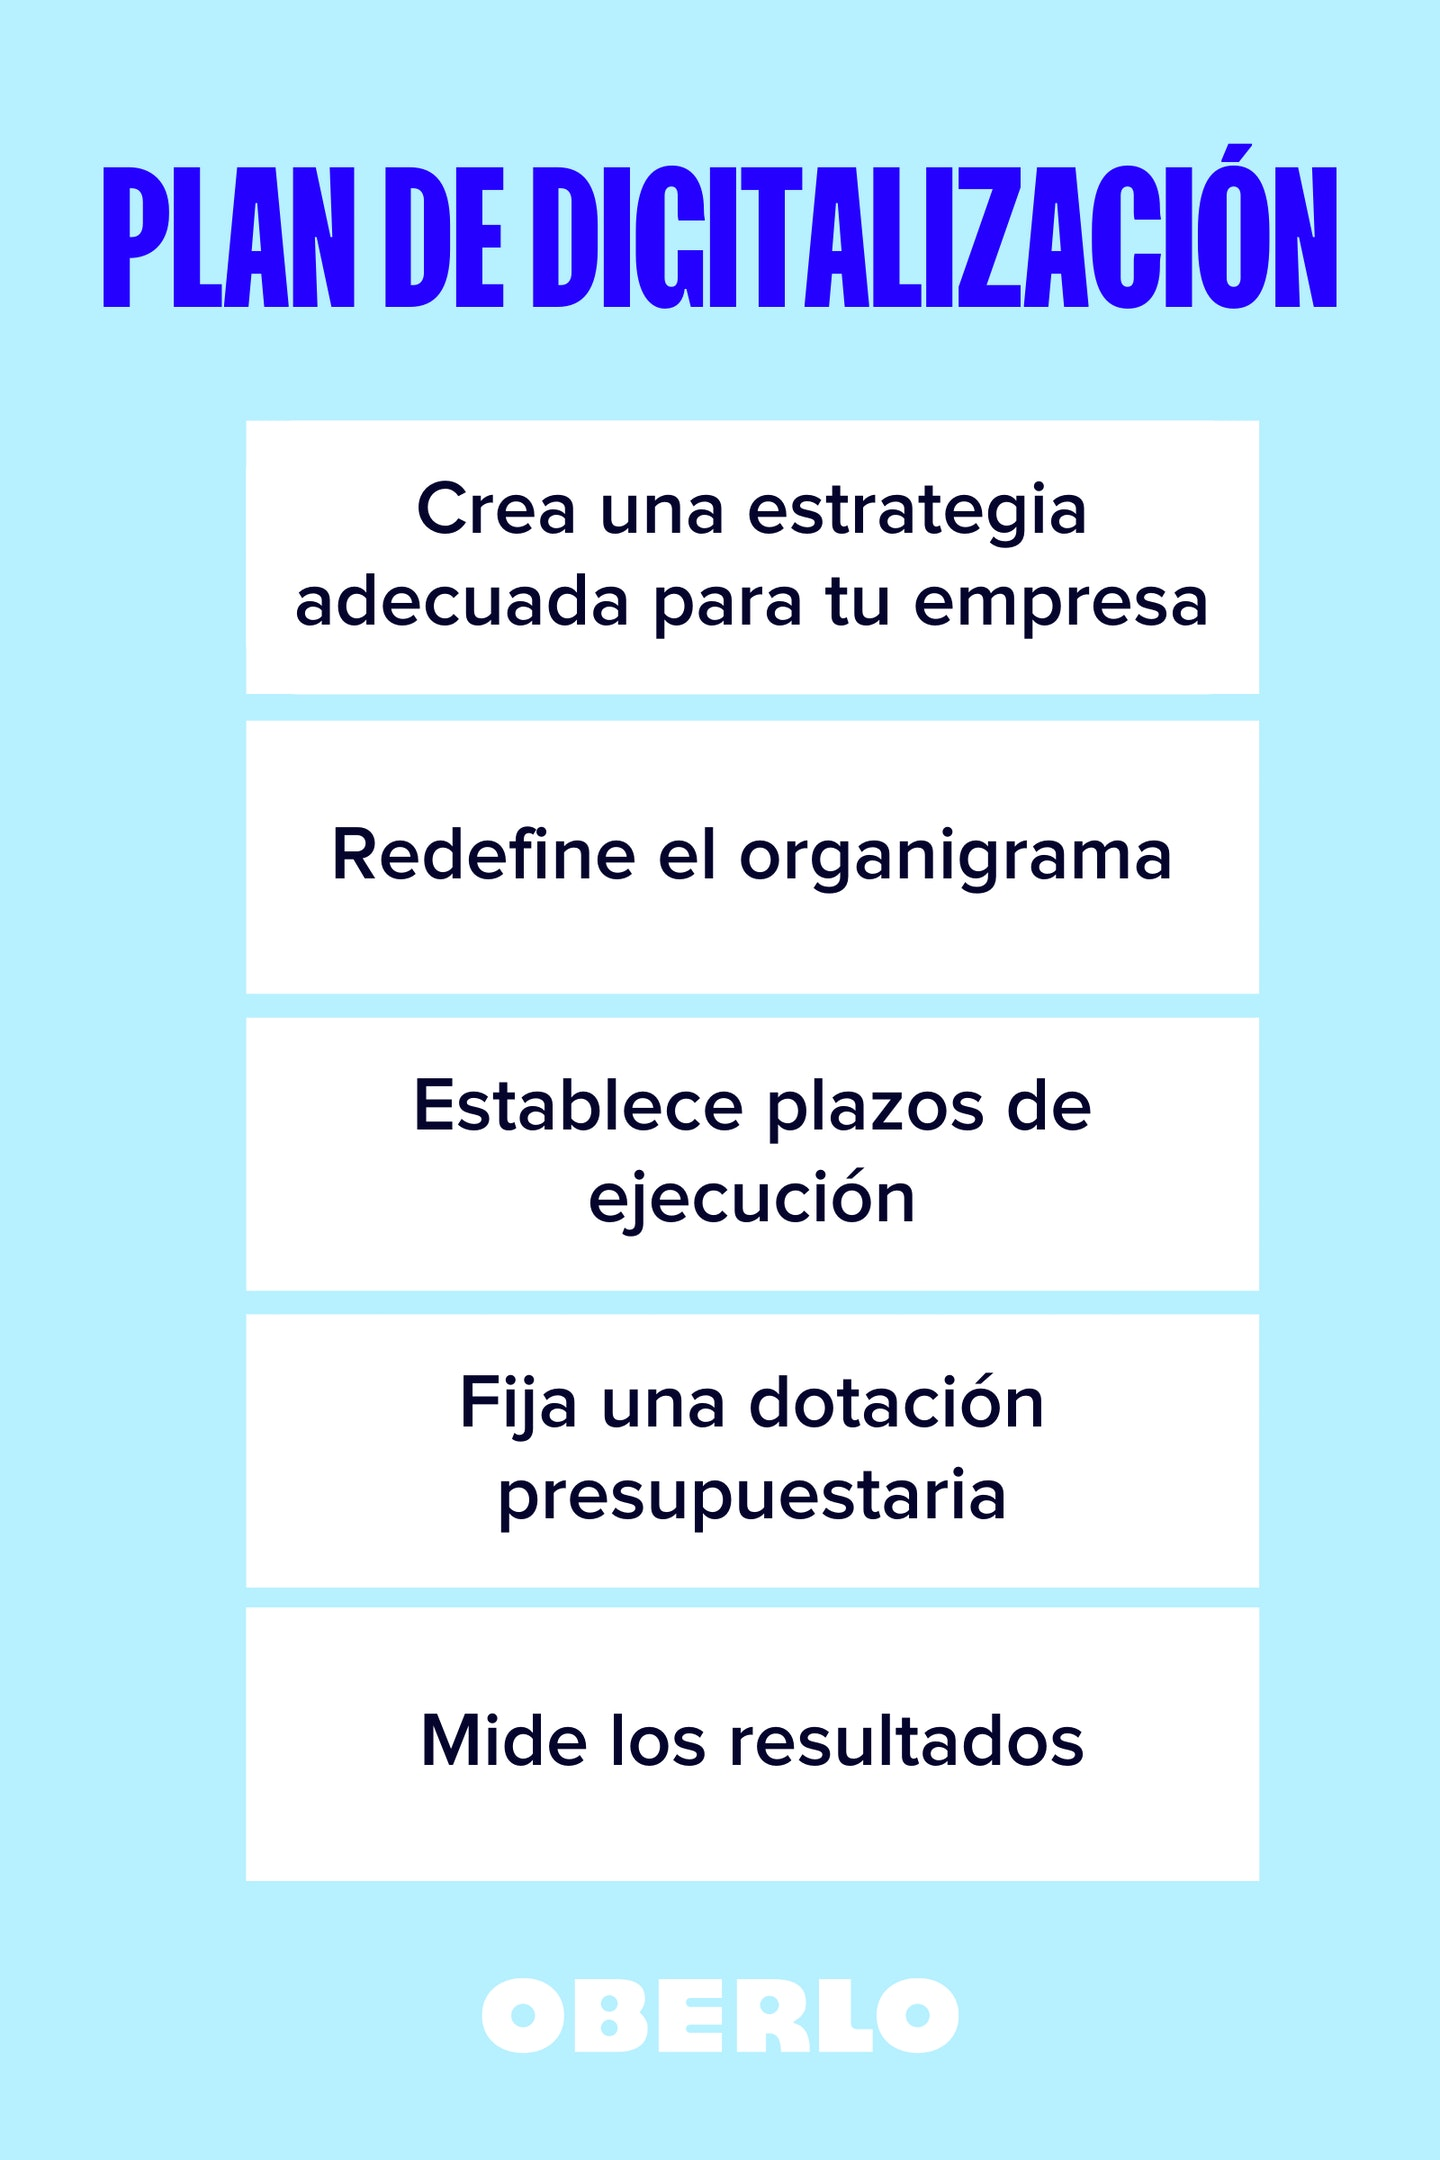 plan de transformacion digital